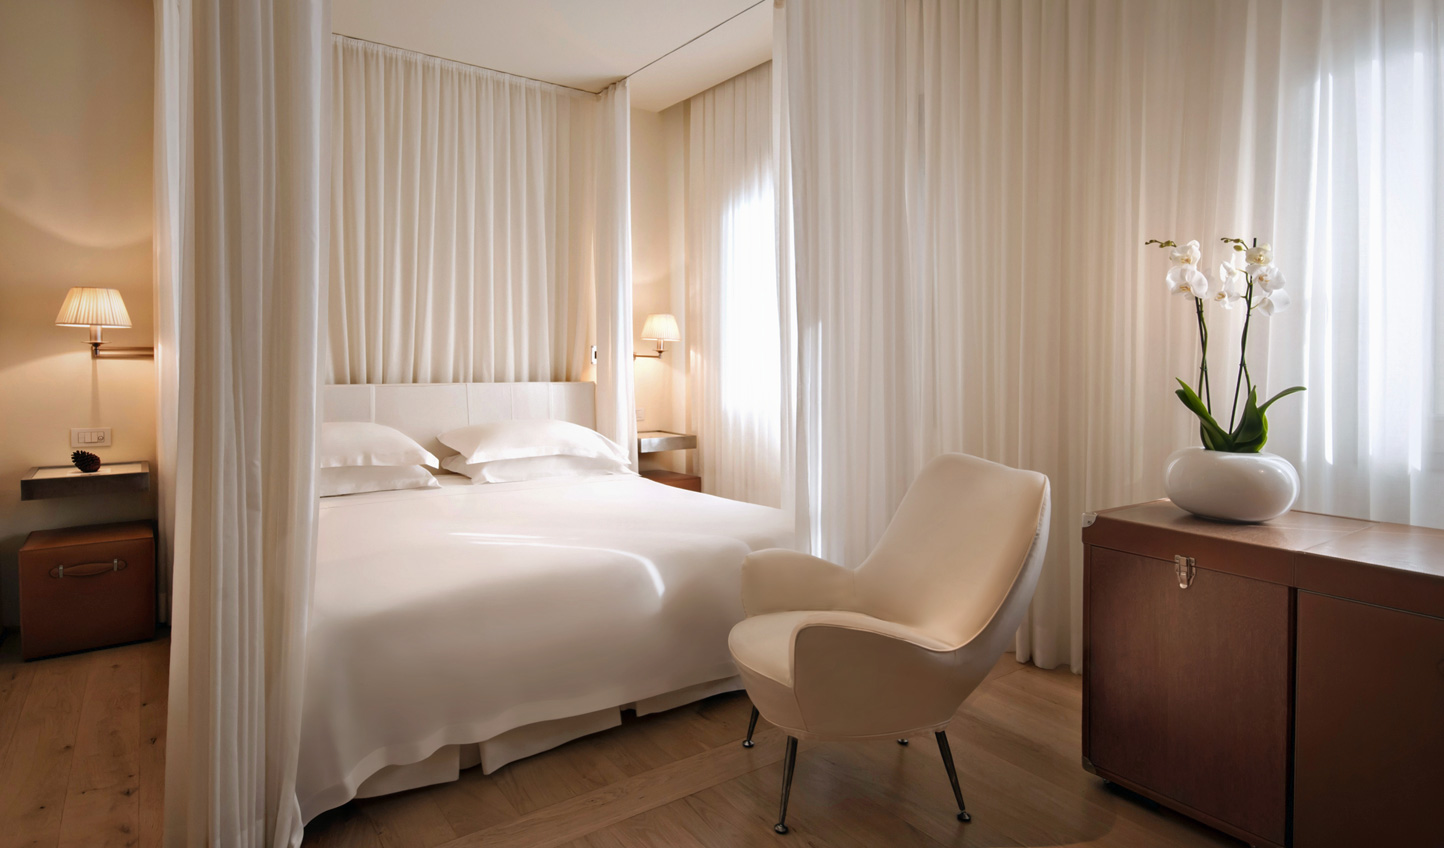 Chic suites at Continentale